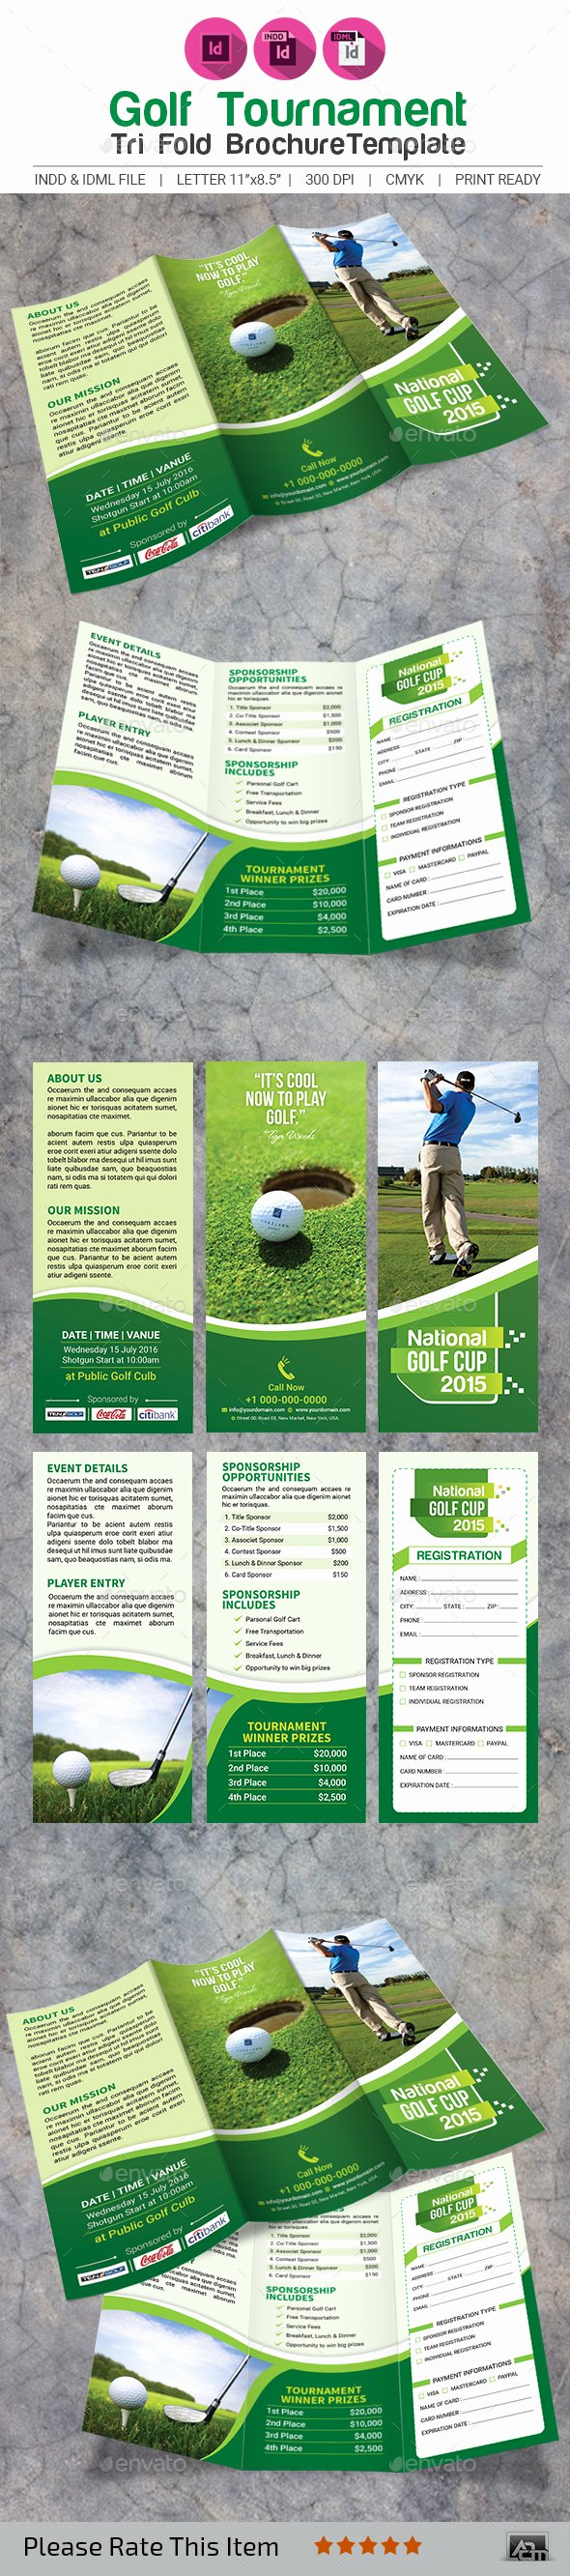 Golf tournament Brochure Template Awesome Golf tournament Tri Fold Brochure Template by Aam360